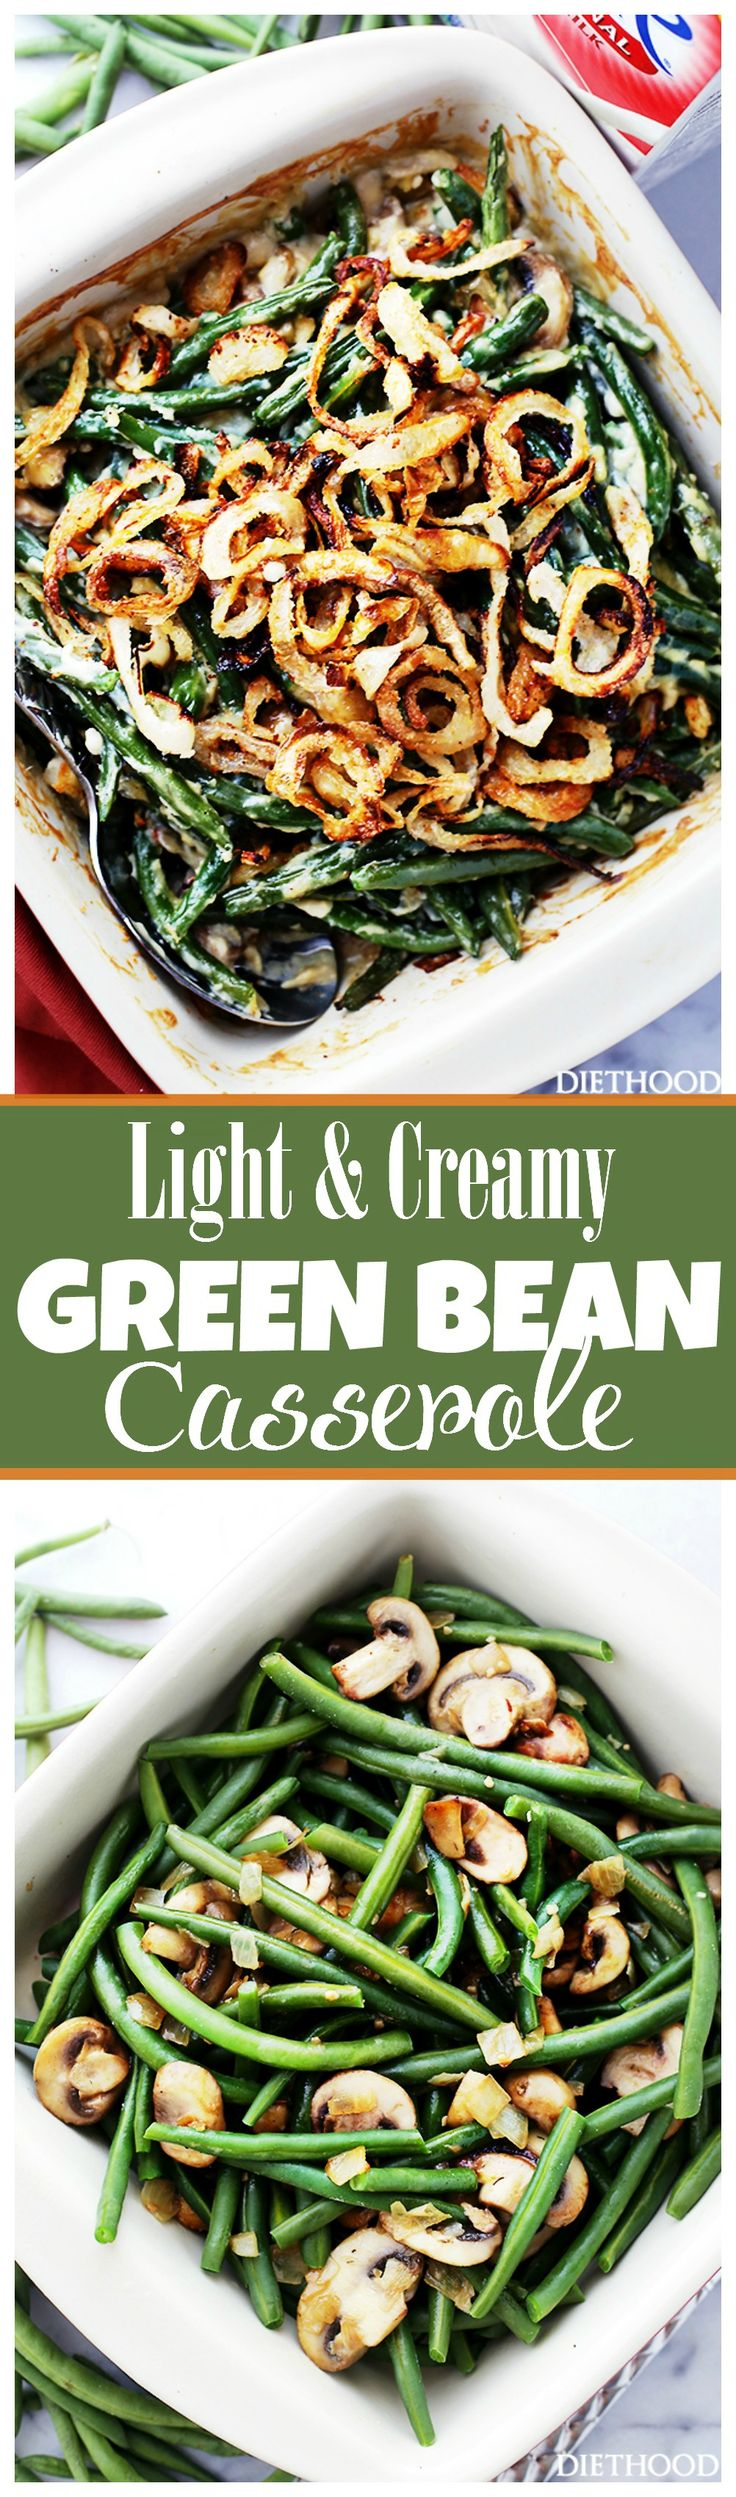 Lightened-Up Creamy Green Bean Casserole - A delicious and creamy lightened-up version of everyone's favorite Thanksgiving green beans side dish made with fresh ingredients, and without the canned processed creams.